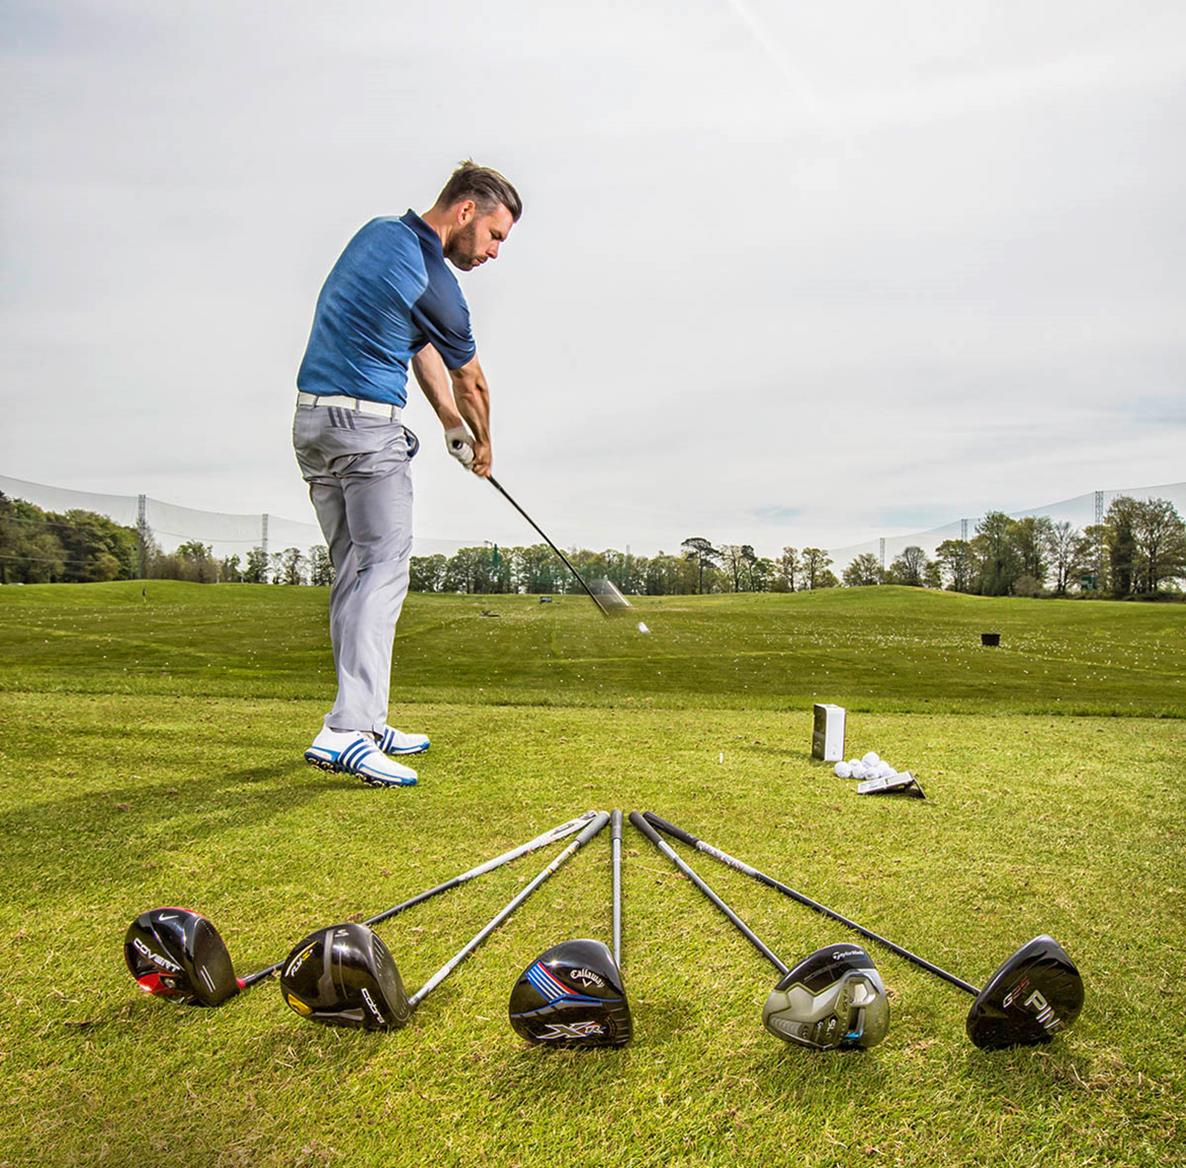 90% of driver shafts are too long"